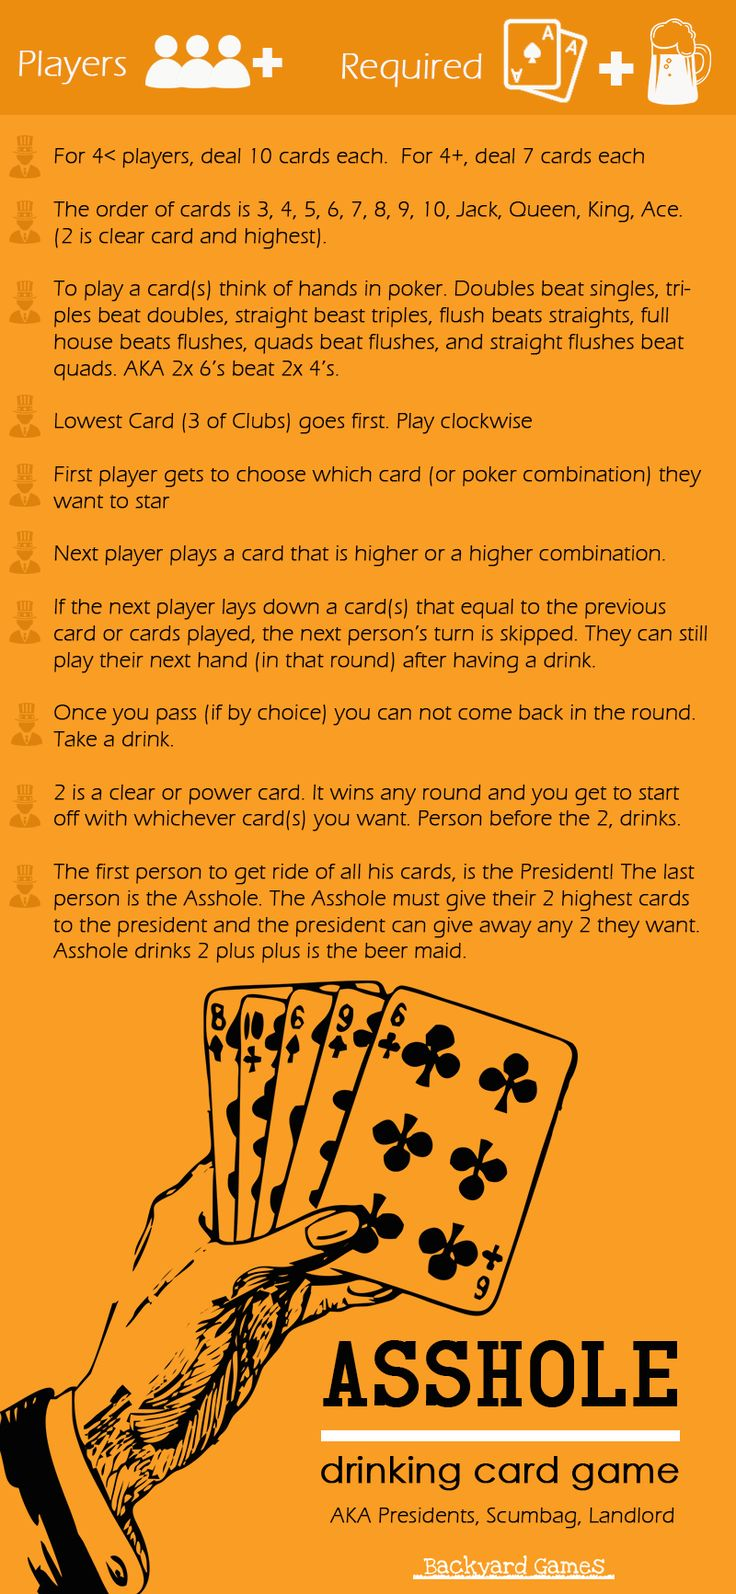 Best Drinking Games Without Cards Ideas On Pinterest - Four corners drinking game